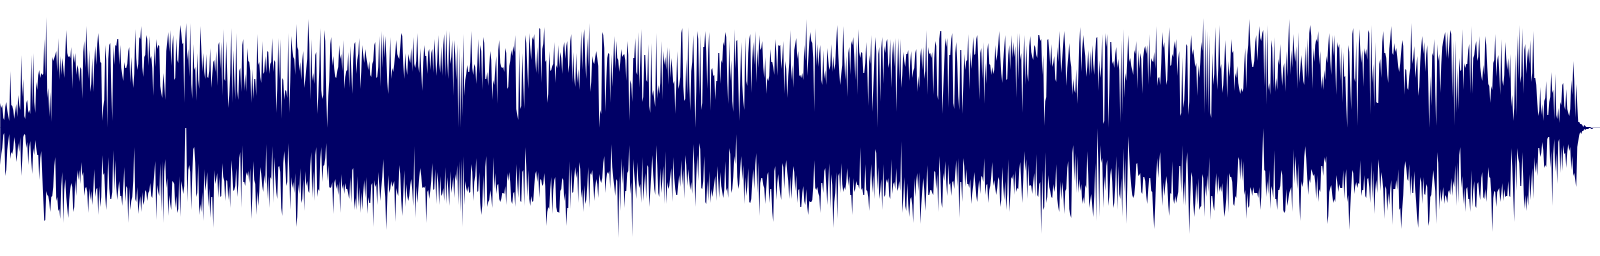 waveform of track #136288